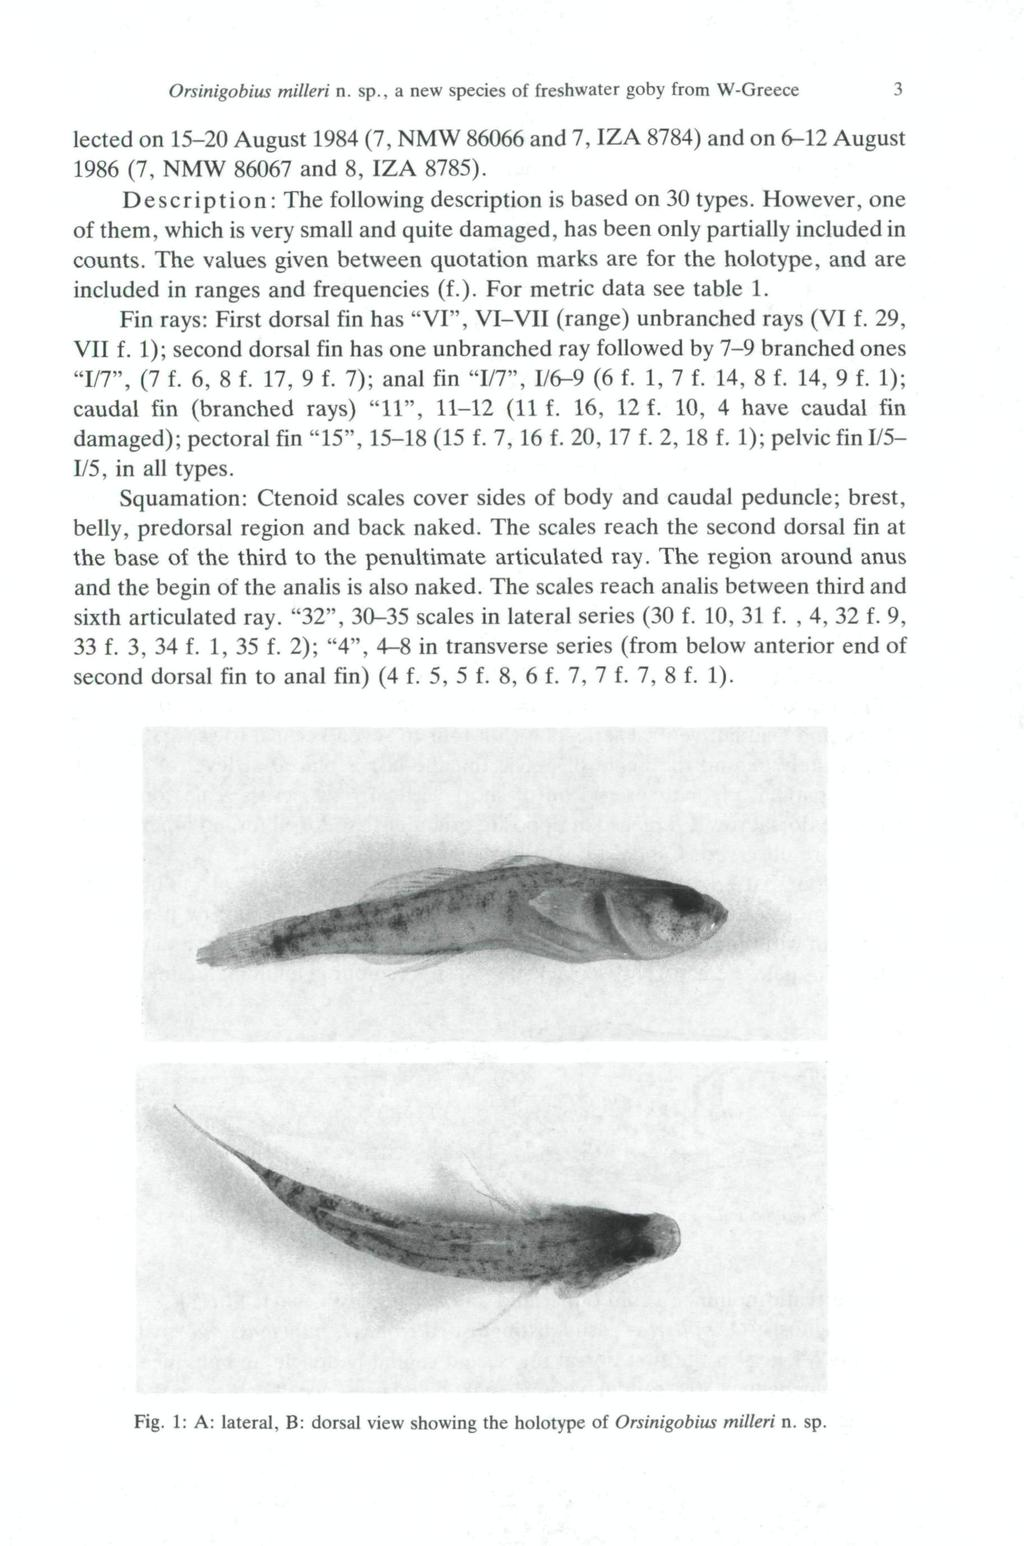 Orsinigobius milleri n. sp., a new species of freshwater goby from W-Greece 3 lected on 15-20 August 1984 (7, NMW 86066 and 7, IZA 8784) and on 6-12 August 1986 (7, NMW 86067 and 8, IZA 8785).